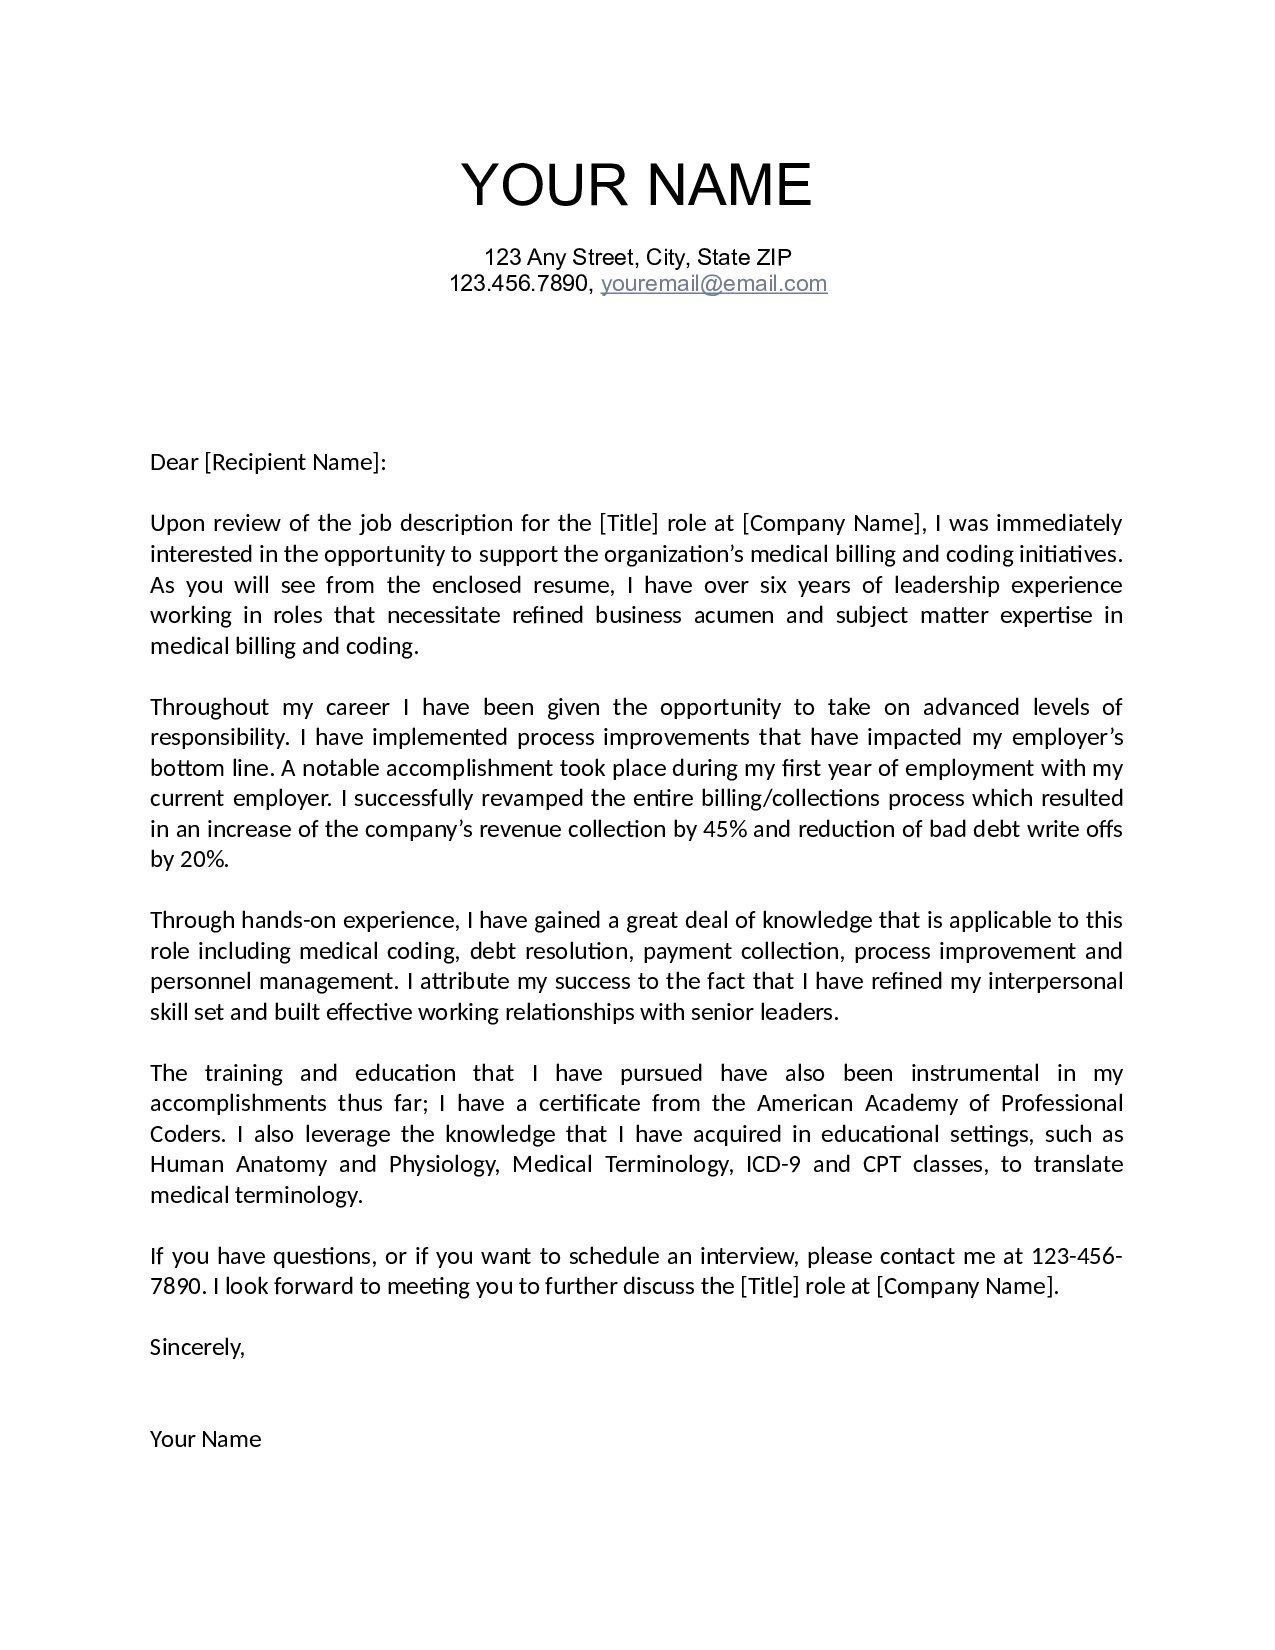 Employer Name Mean - 16 Luxury Hand Written Letter Land Of Template